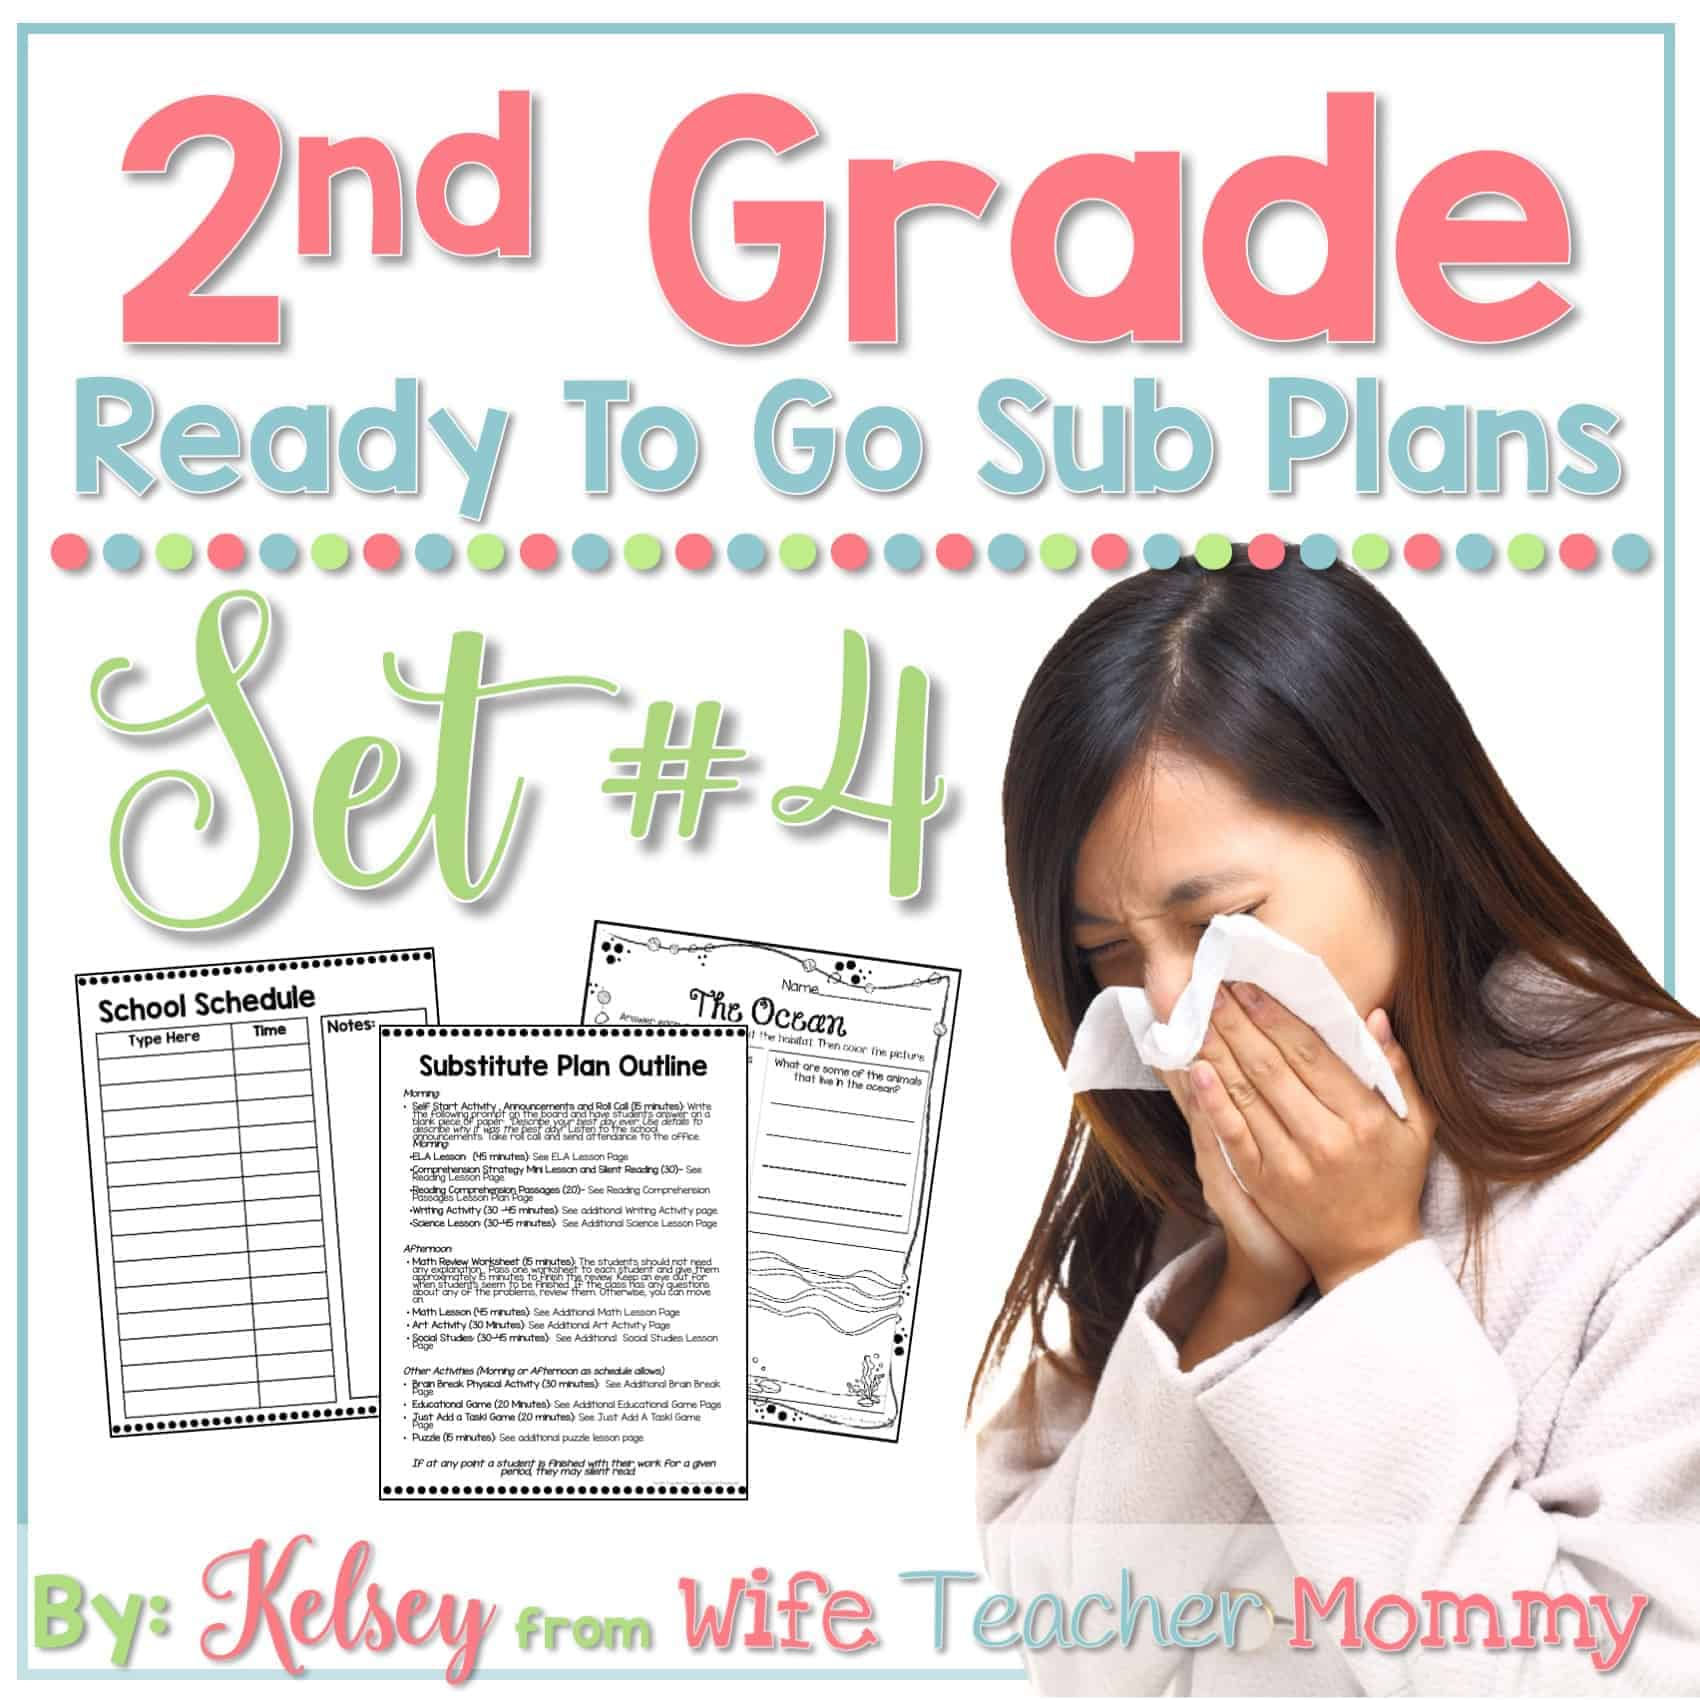 hight resolution of 2nd Grade Ready To Go Sub Plans Set #4 - Wife Teacher Mommy